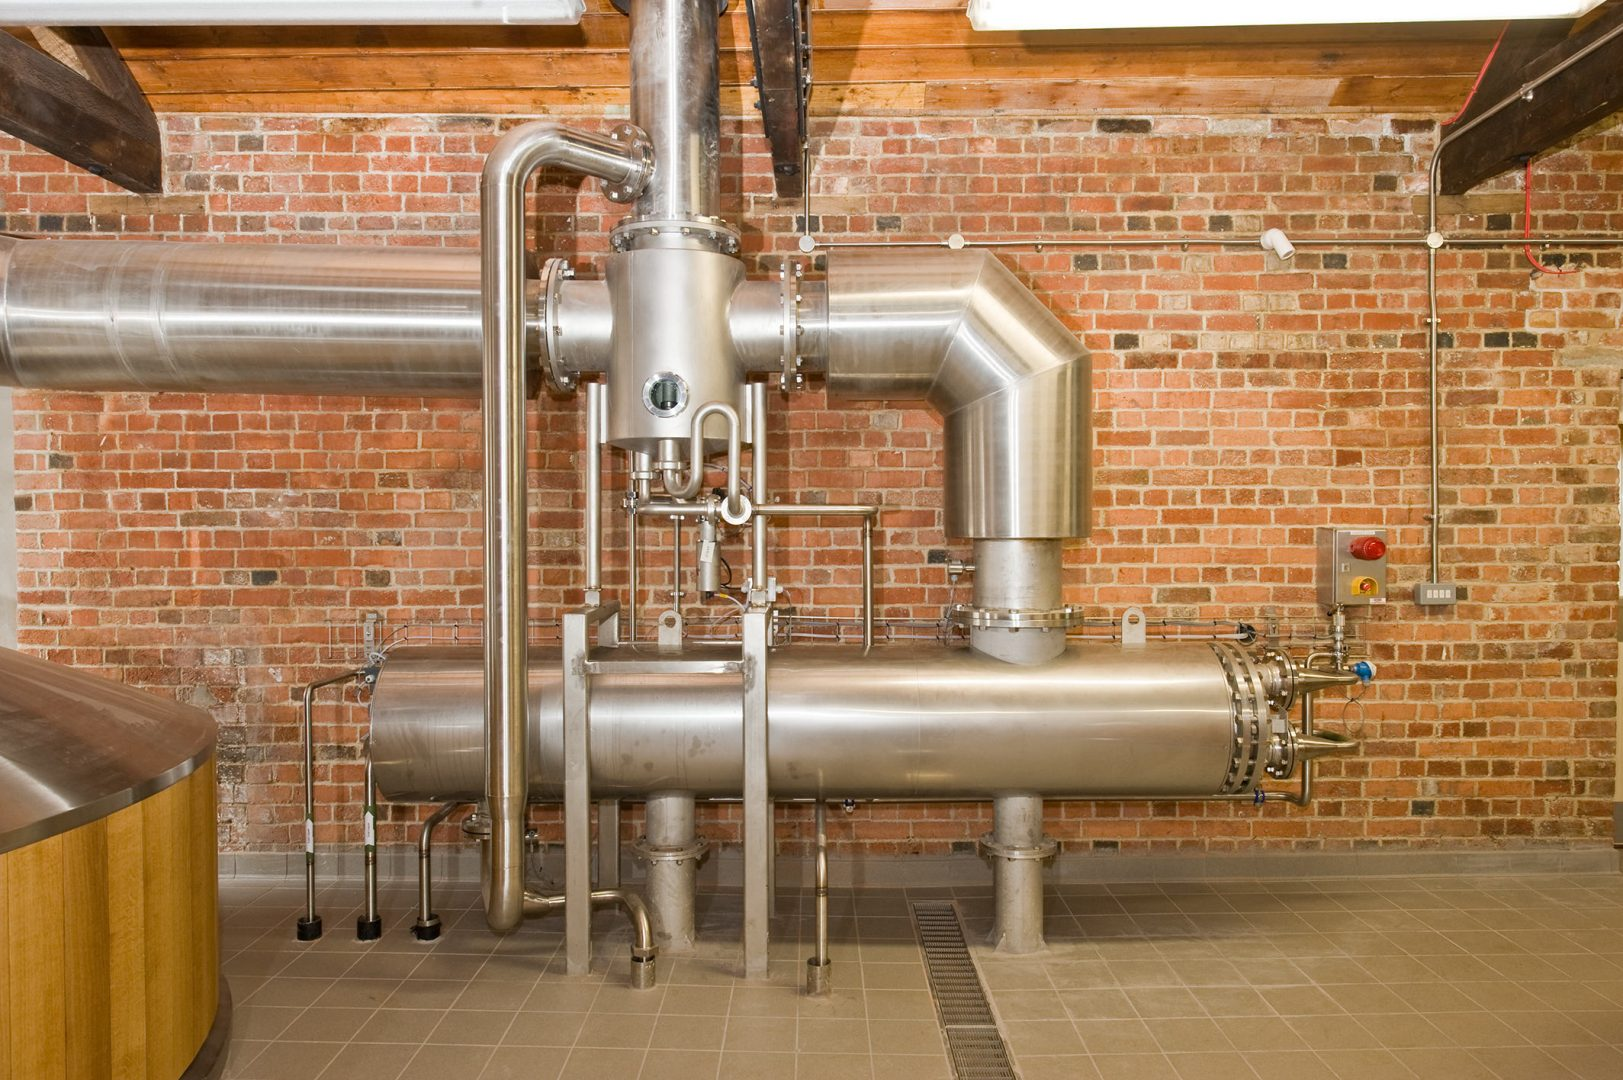 Energy efficiency is becoming a strategic issue for breweries across the world. With the right systems, brewers can use green manufacturing processes.